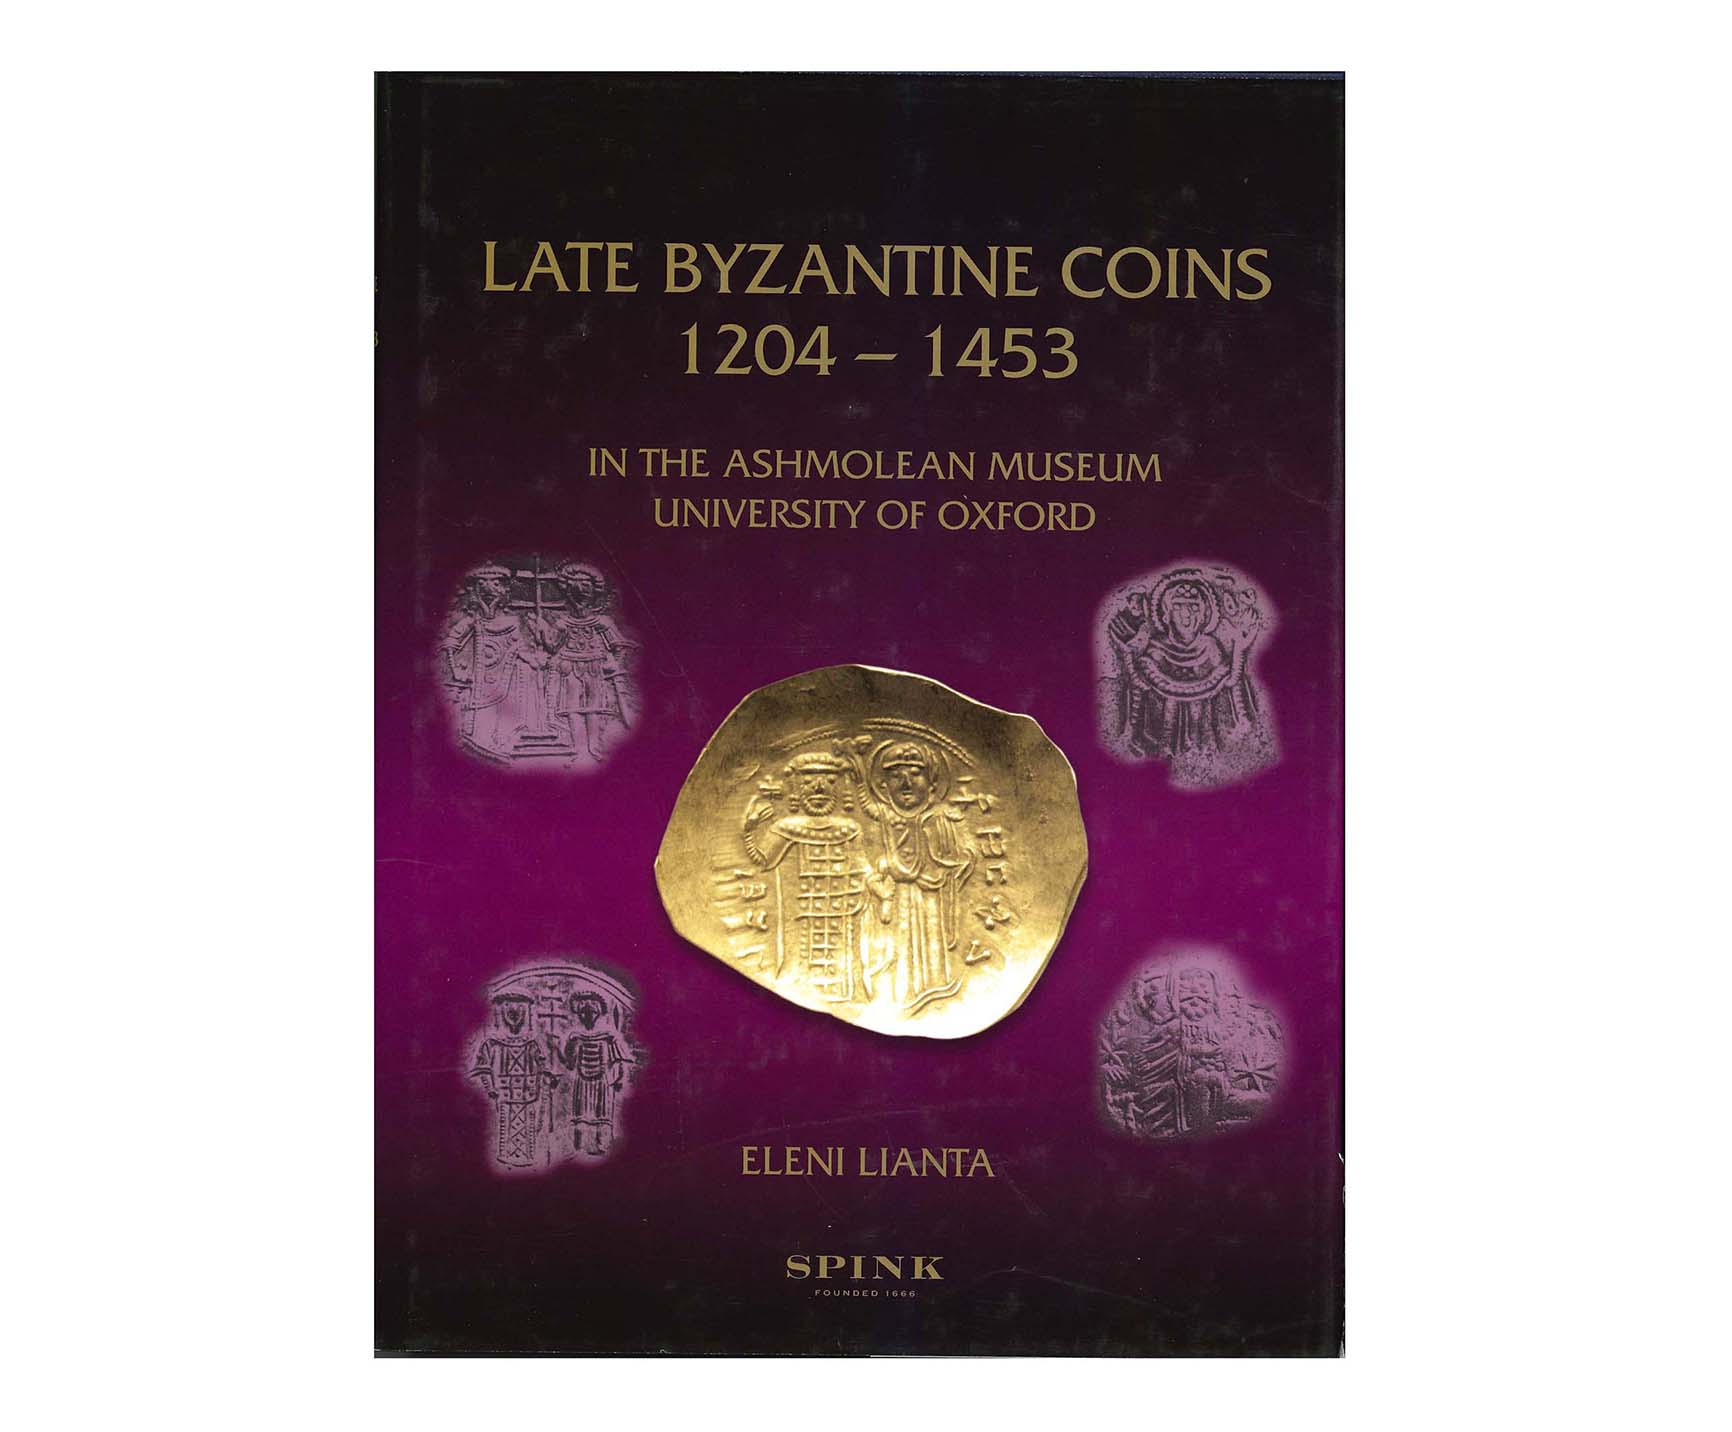 Late Byzantine Coins 1204-1453. In the Ashmolean Museum, University of Oxford